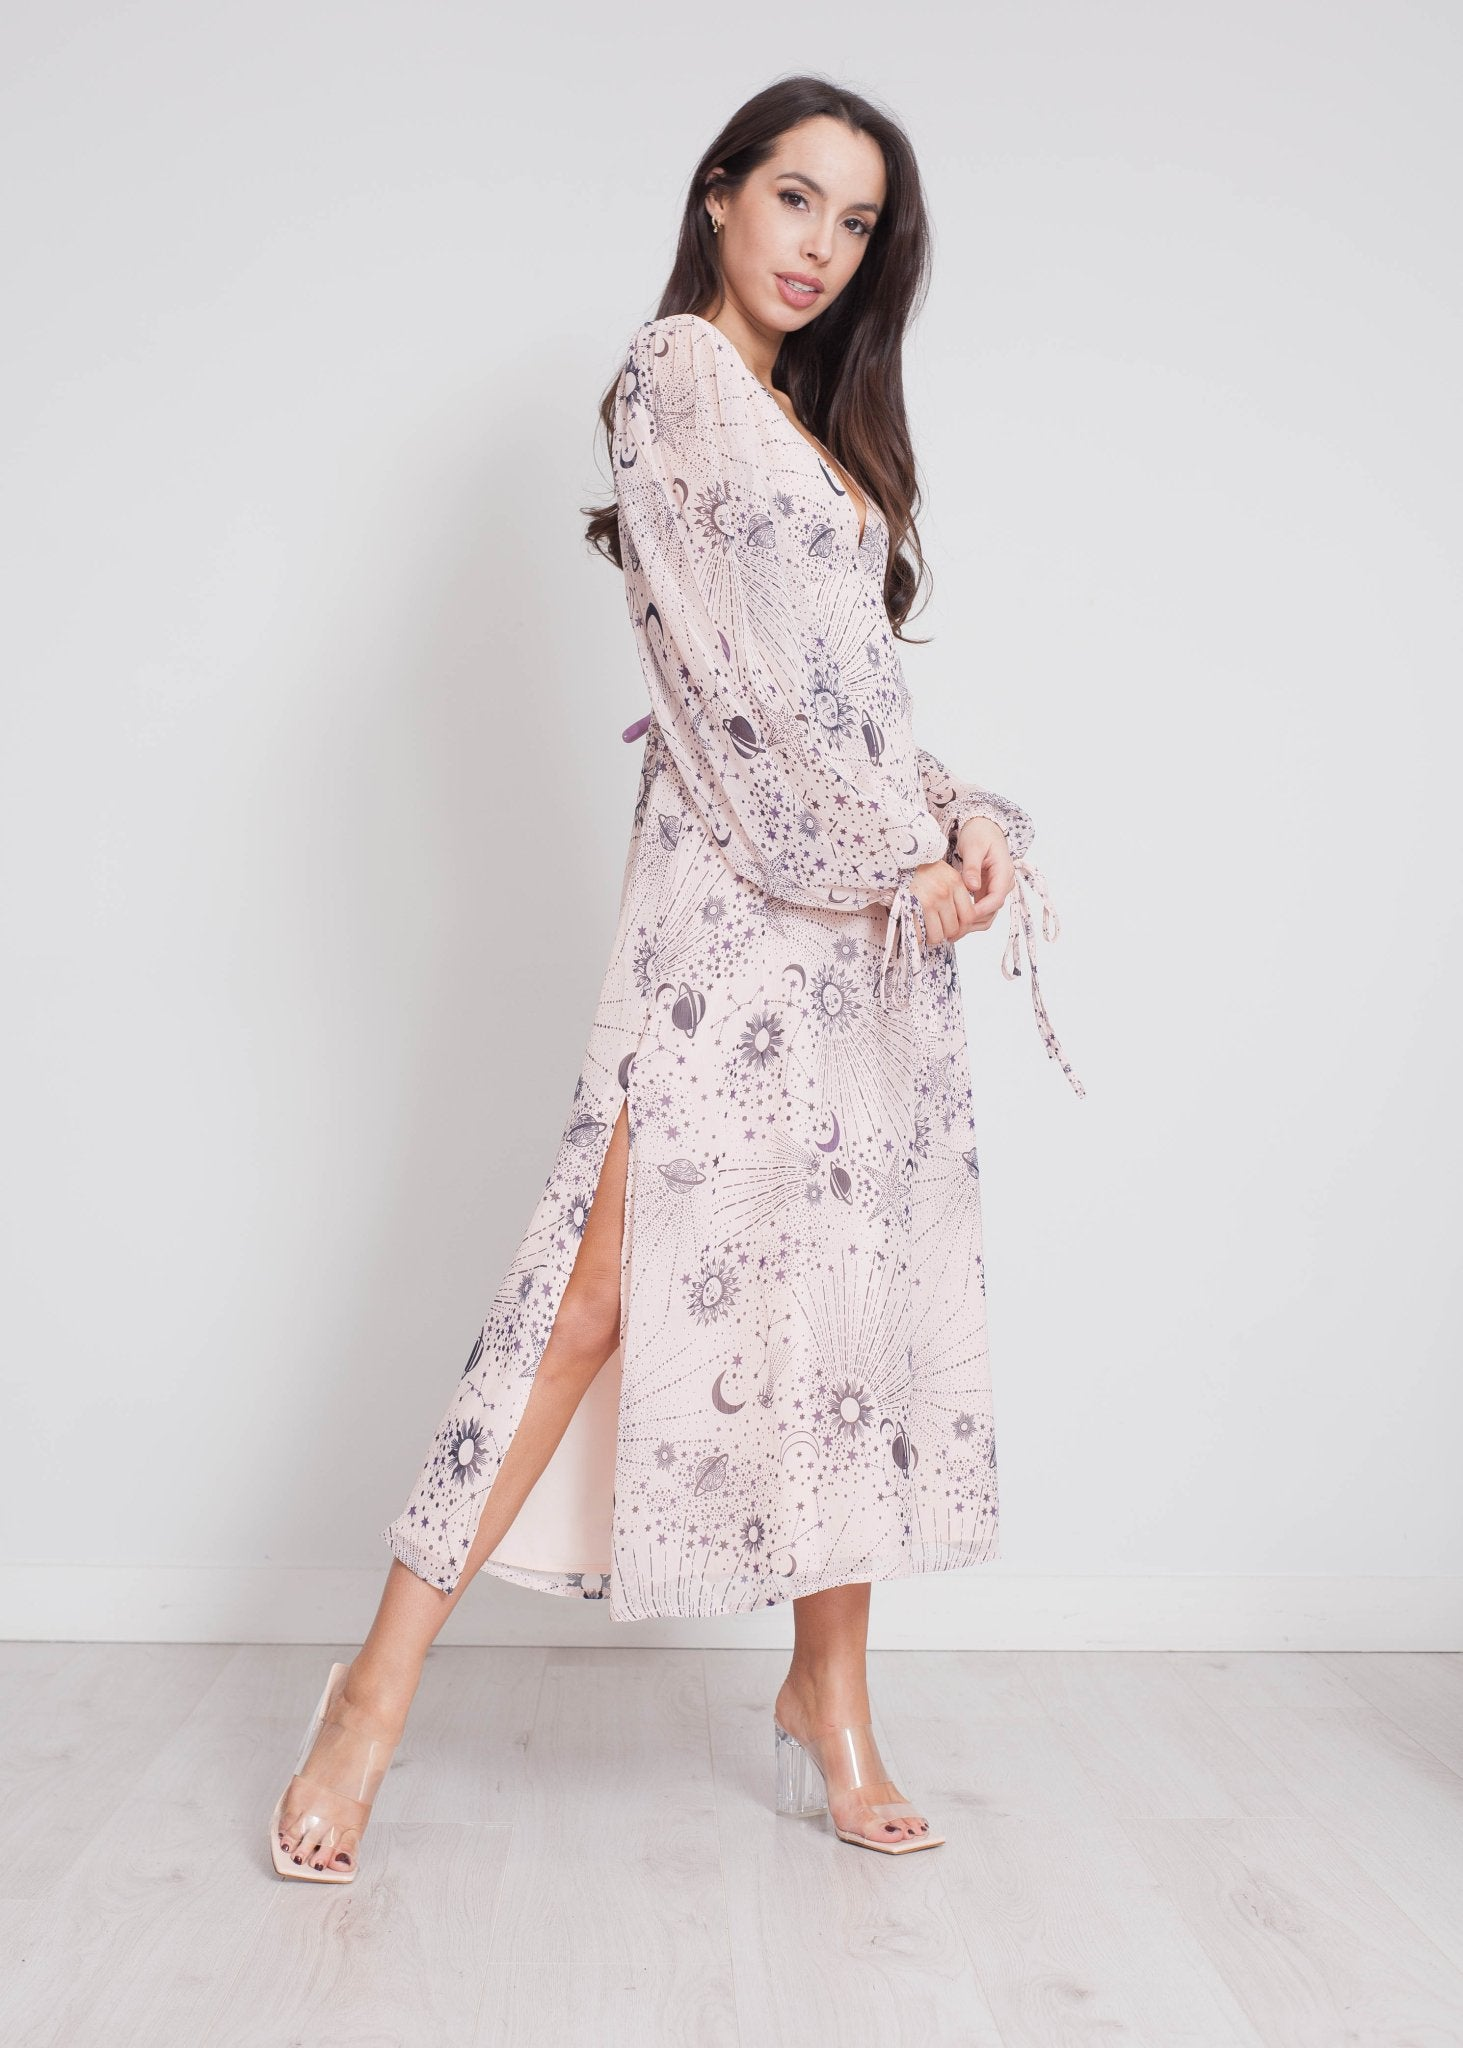 Freya Celestial Print Dress In Blush - The Walk in Wardrobe